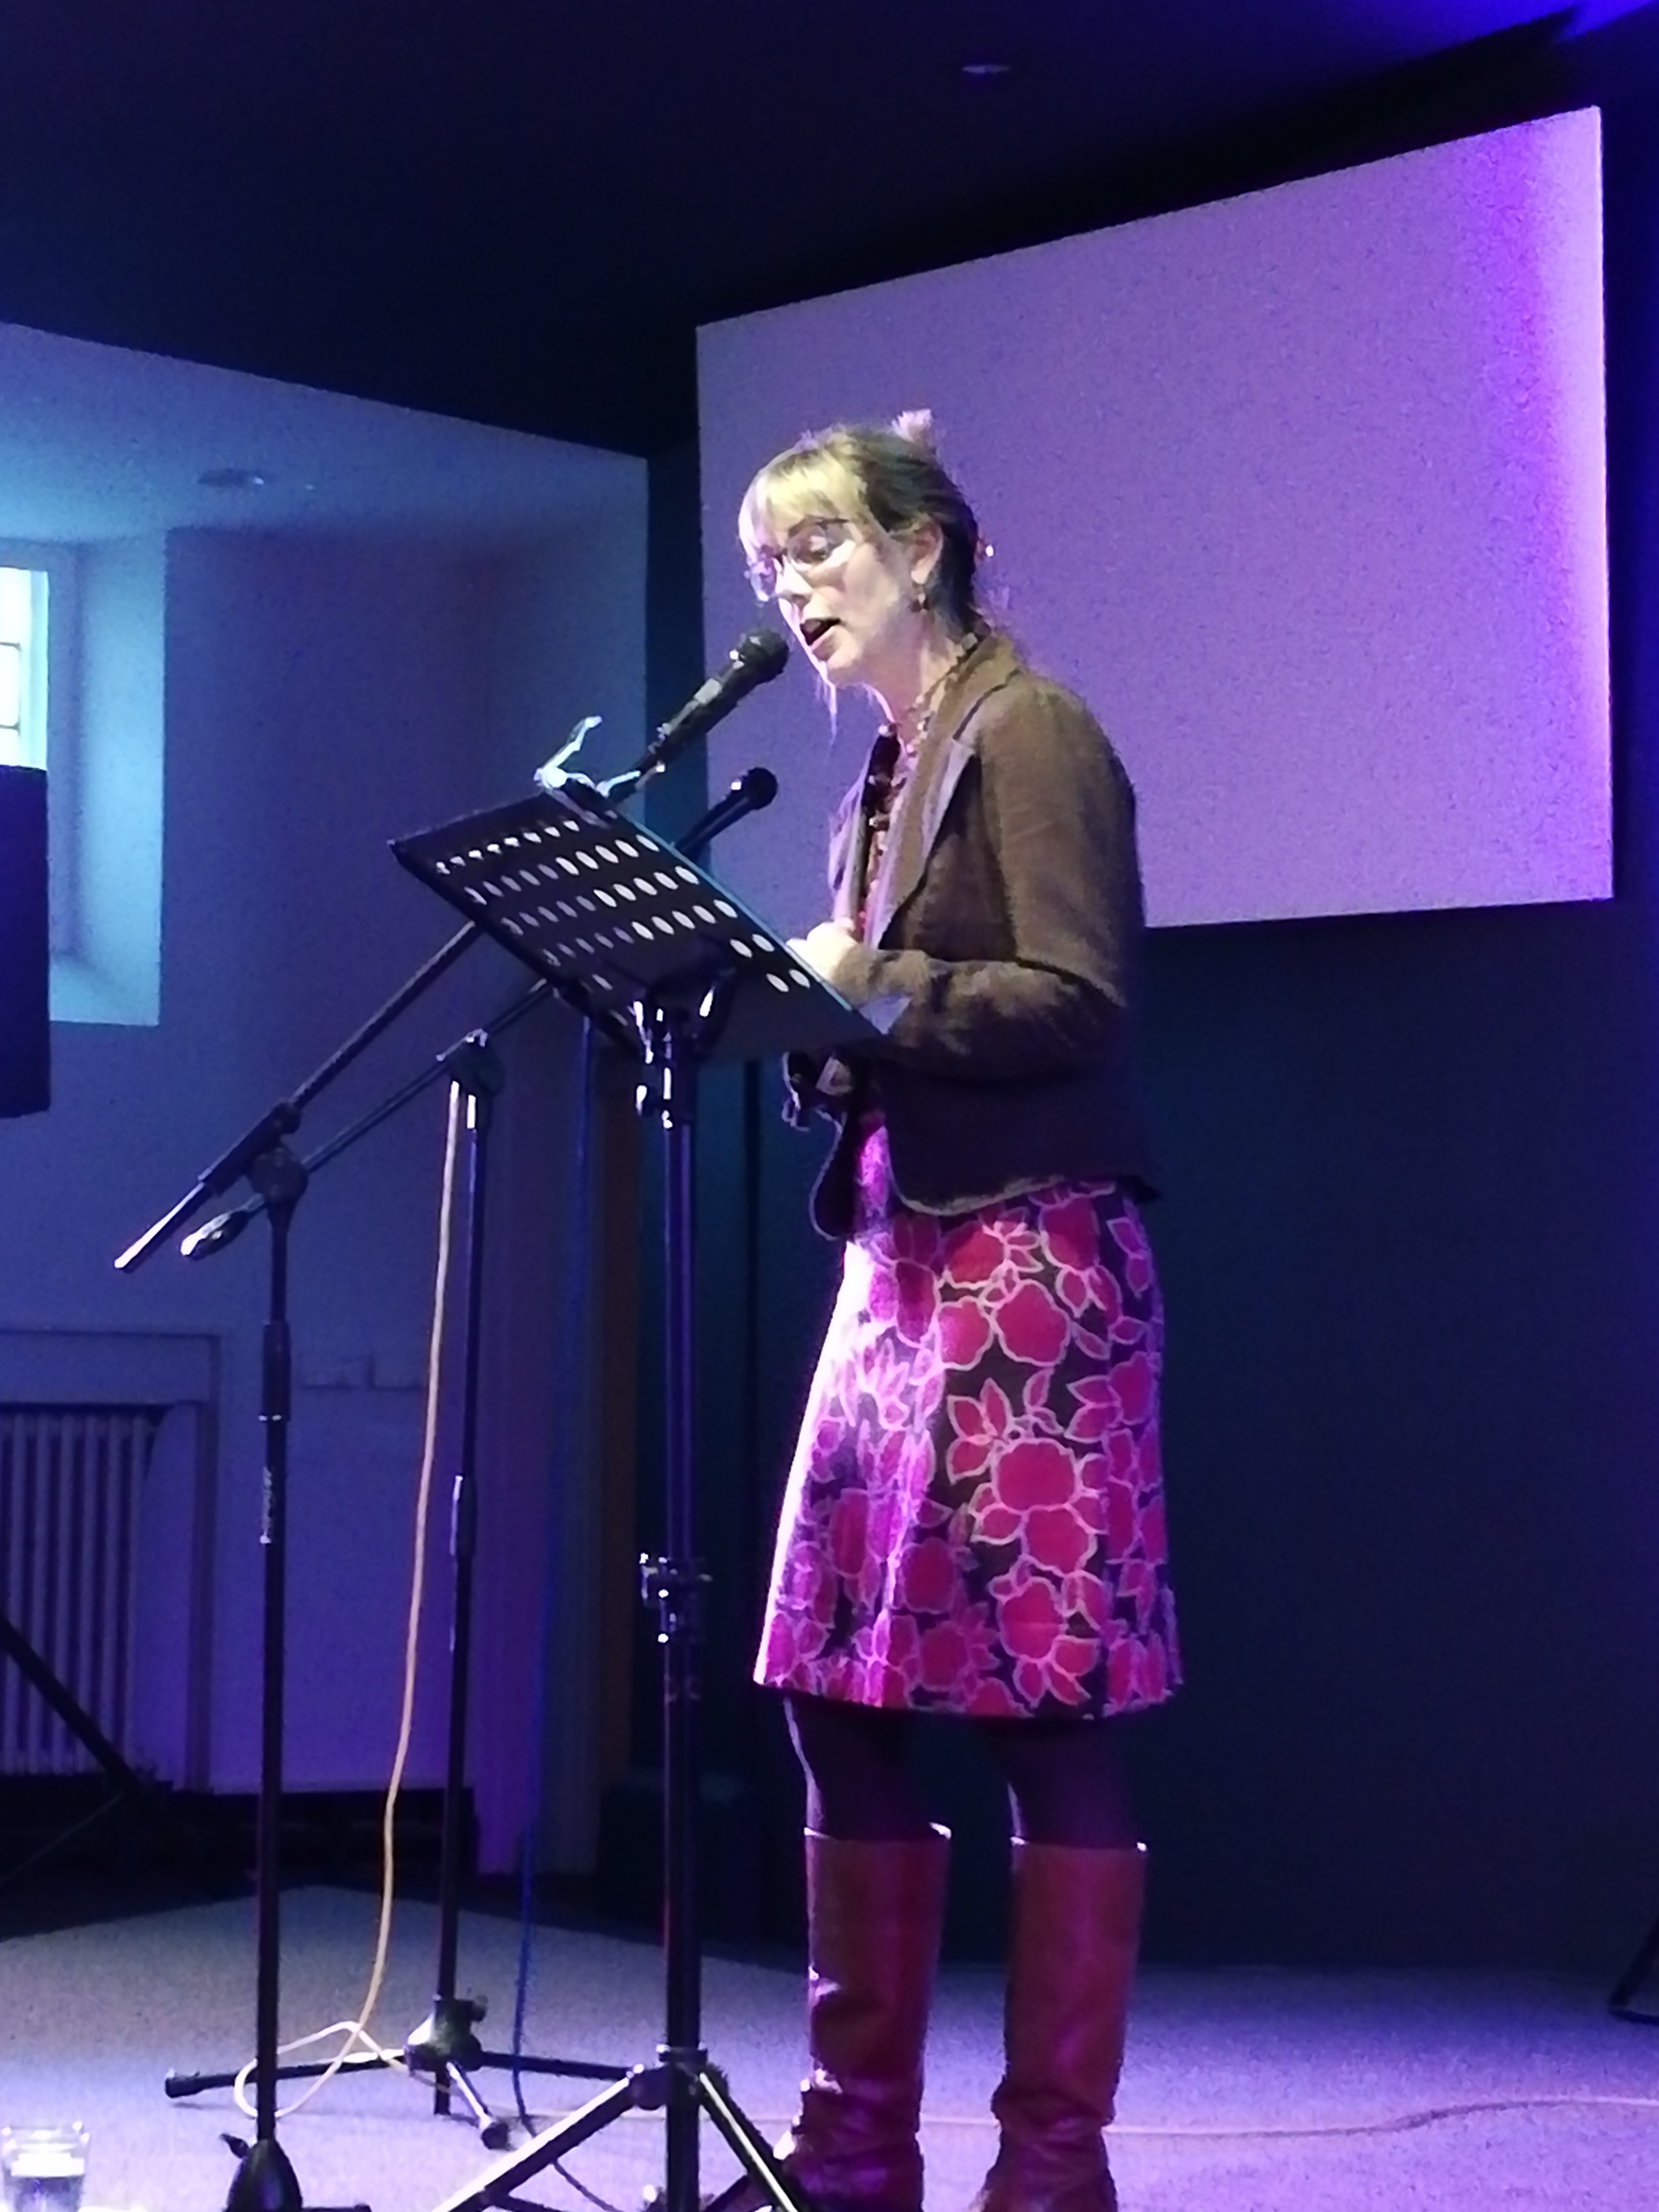 Merryn Glover speaking at Ness Book Fest